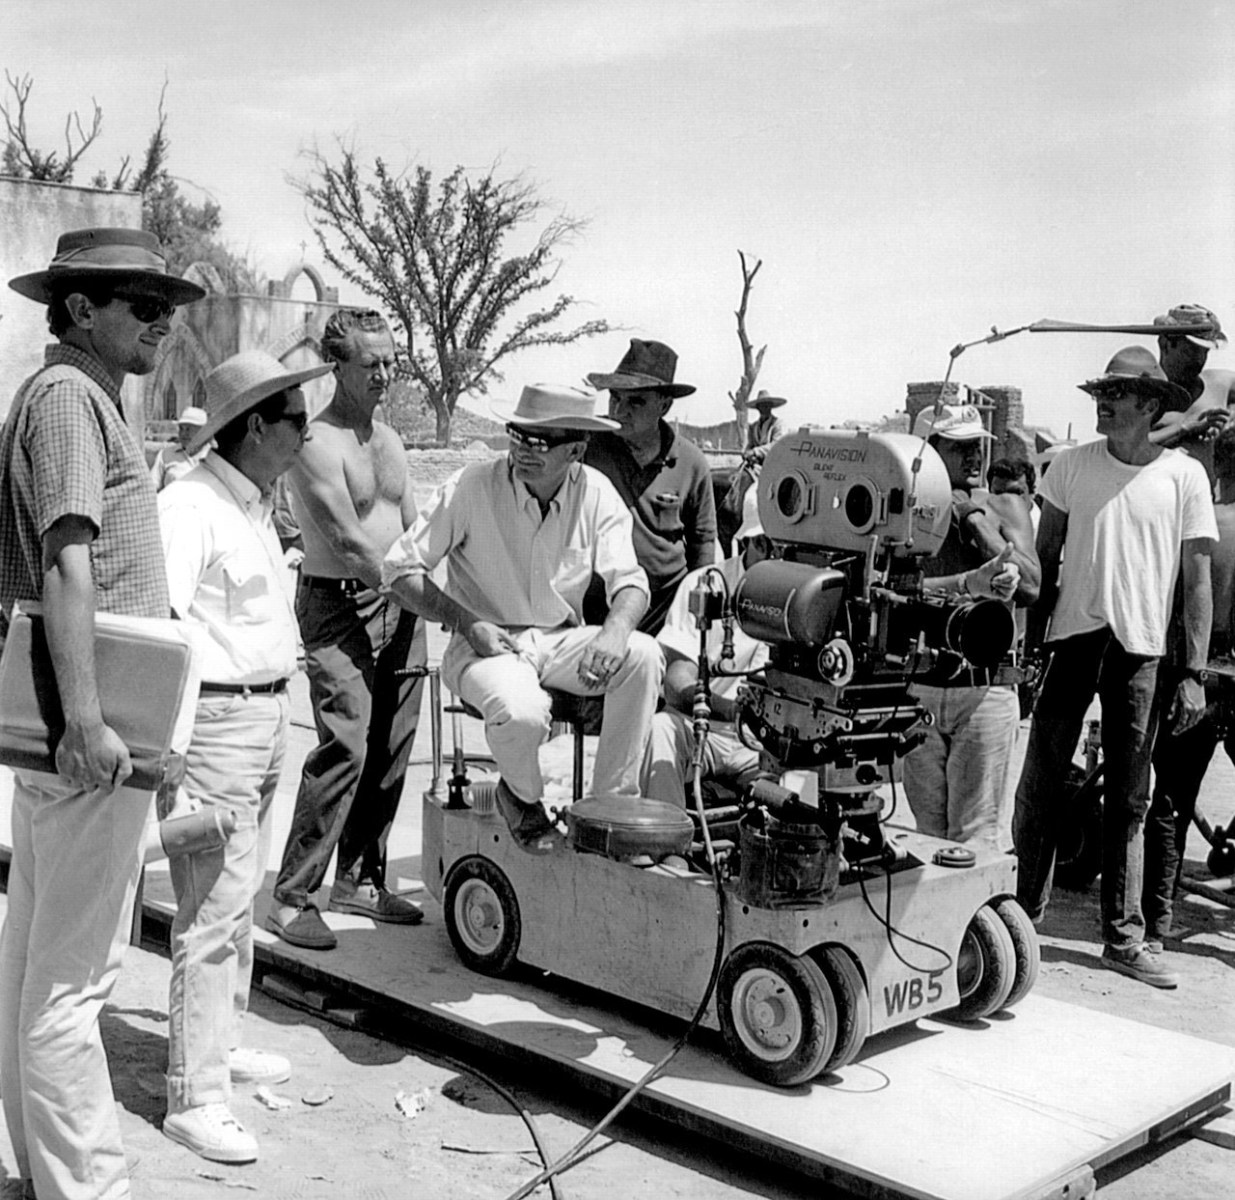 The Film Crew on the Set of The Wild Bunch (1969) Behind the Scenes